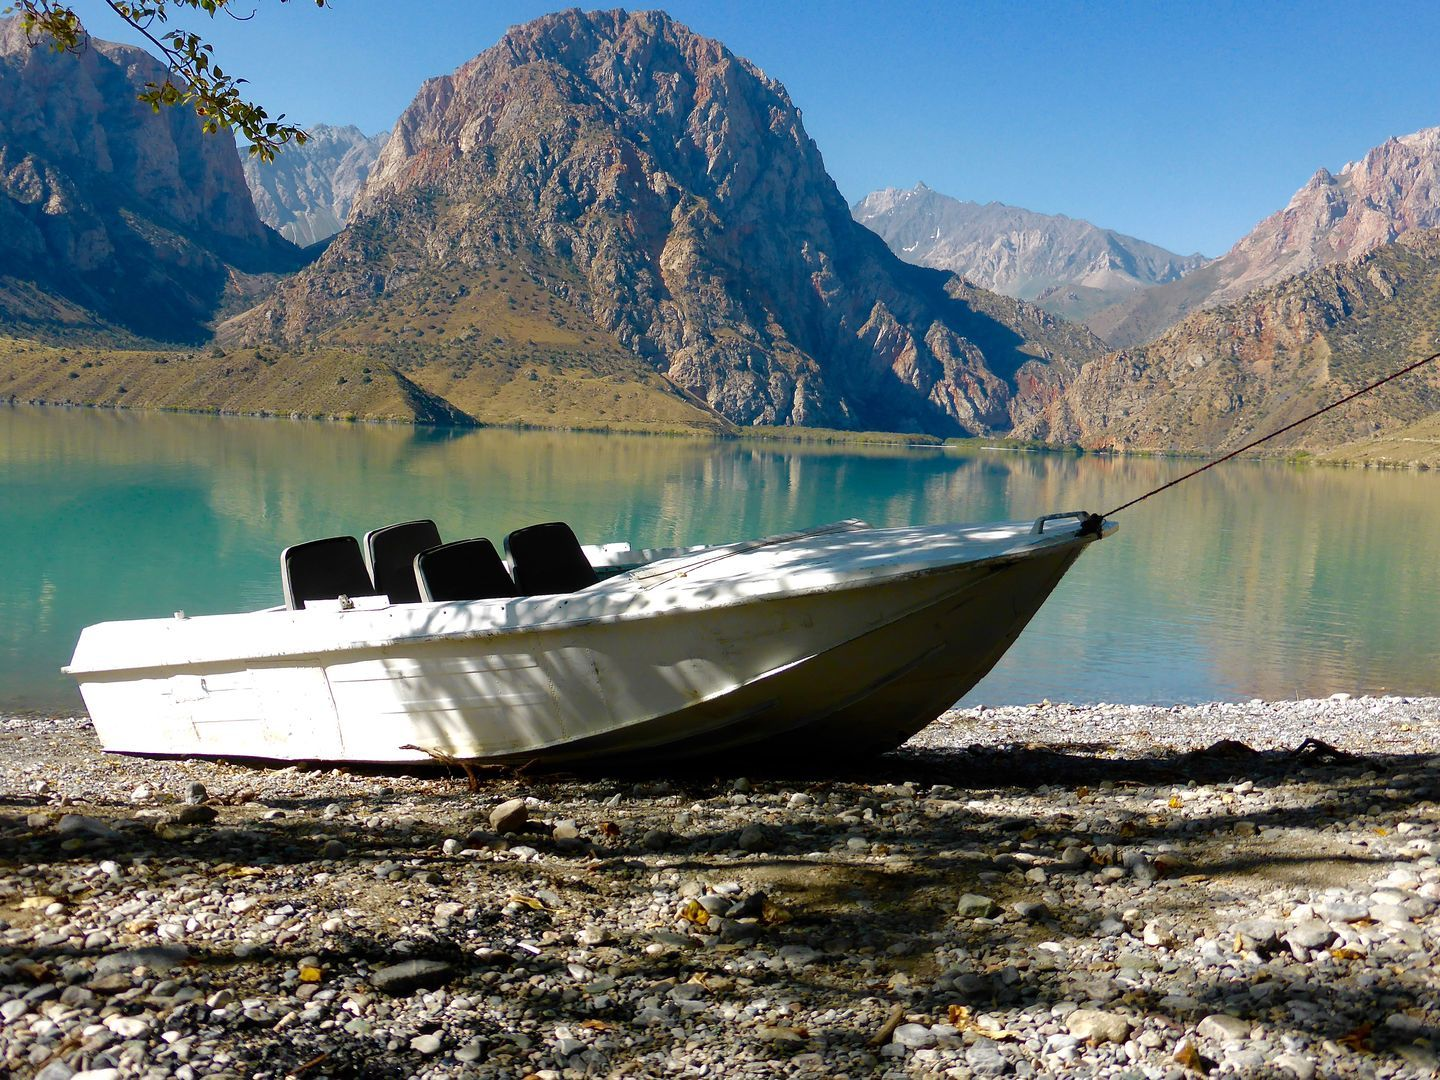 Boat in front of Iskanderkul lake in Best of Central Asia Tour adventure trip